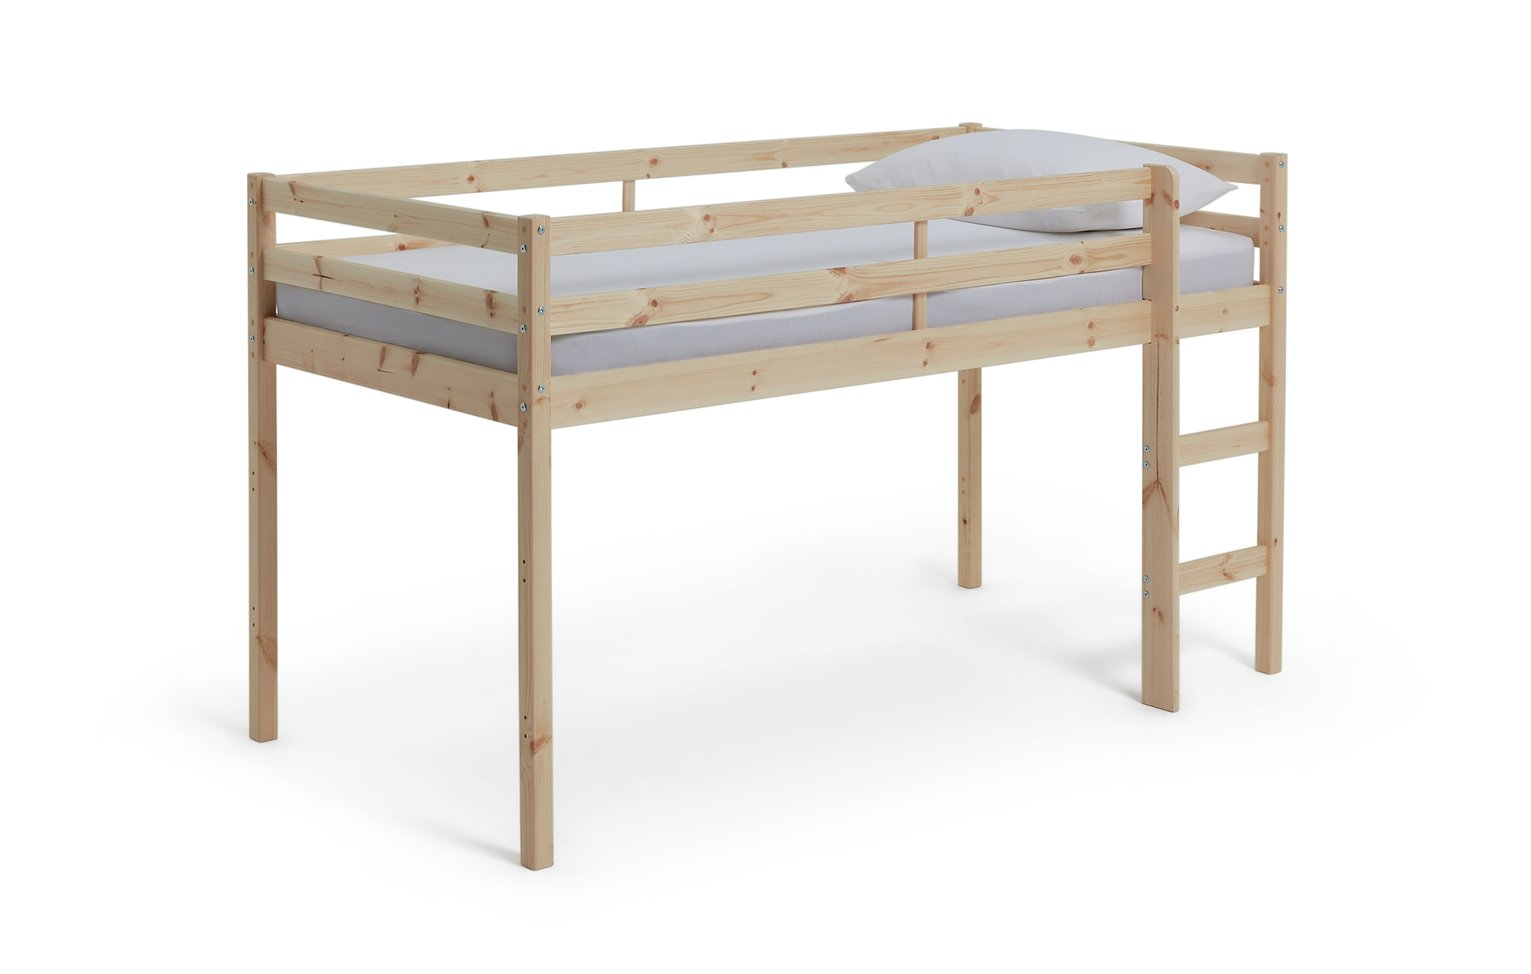 Argos Home Kaycie Pine Mid Sleeper Single Bed Frame